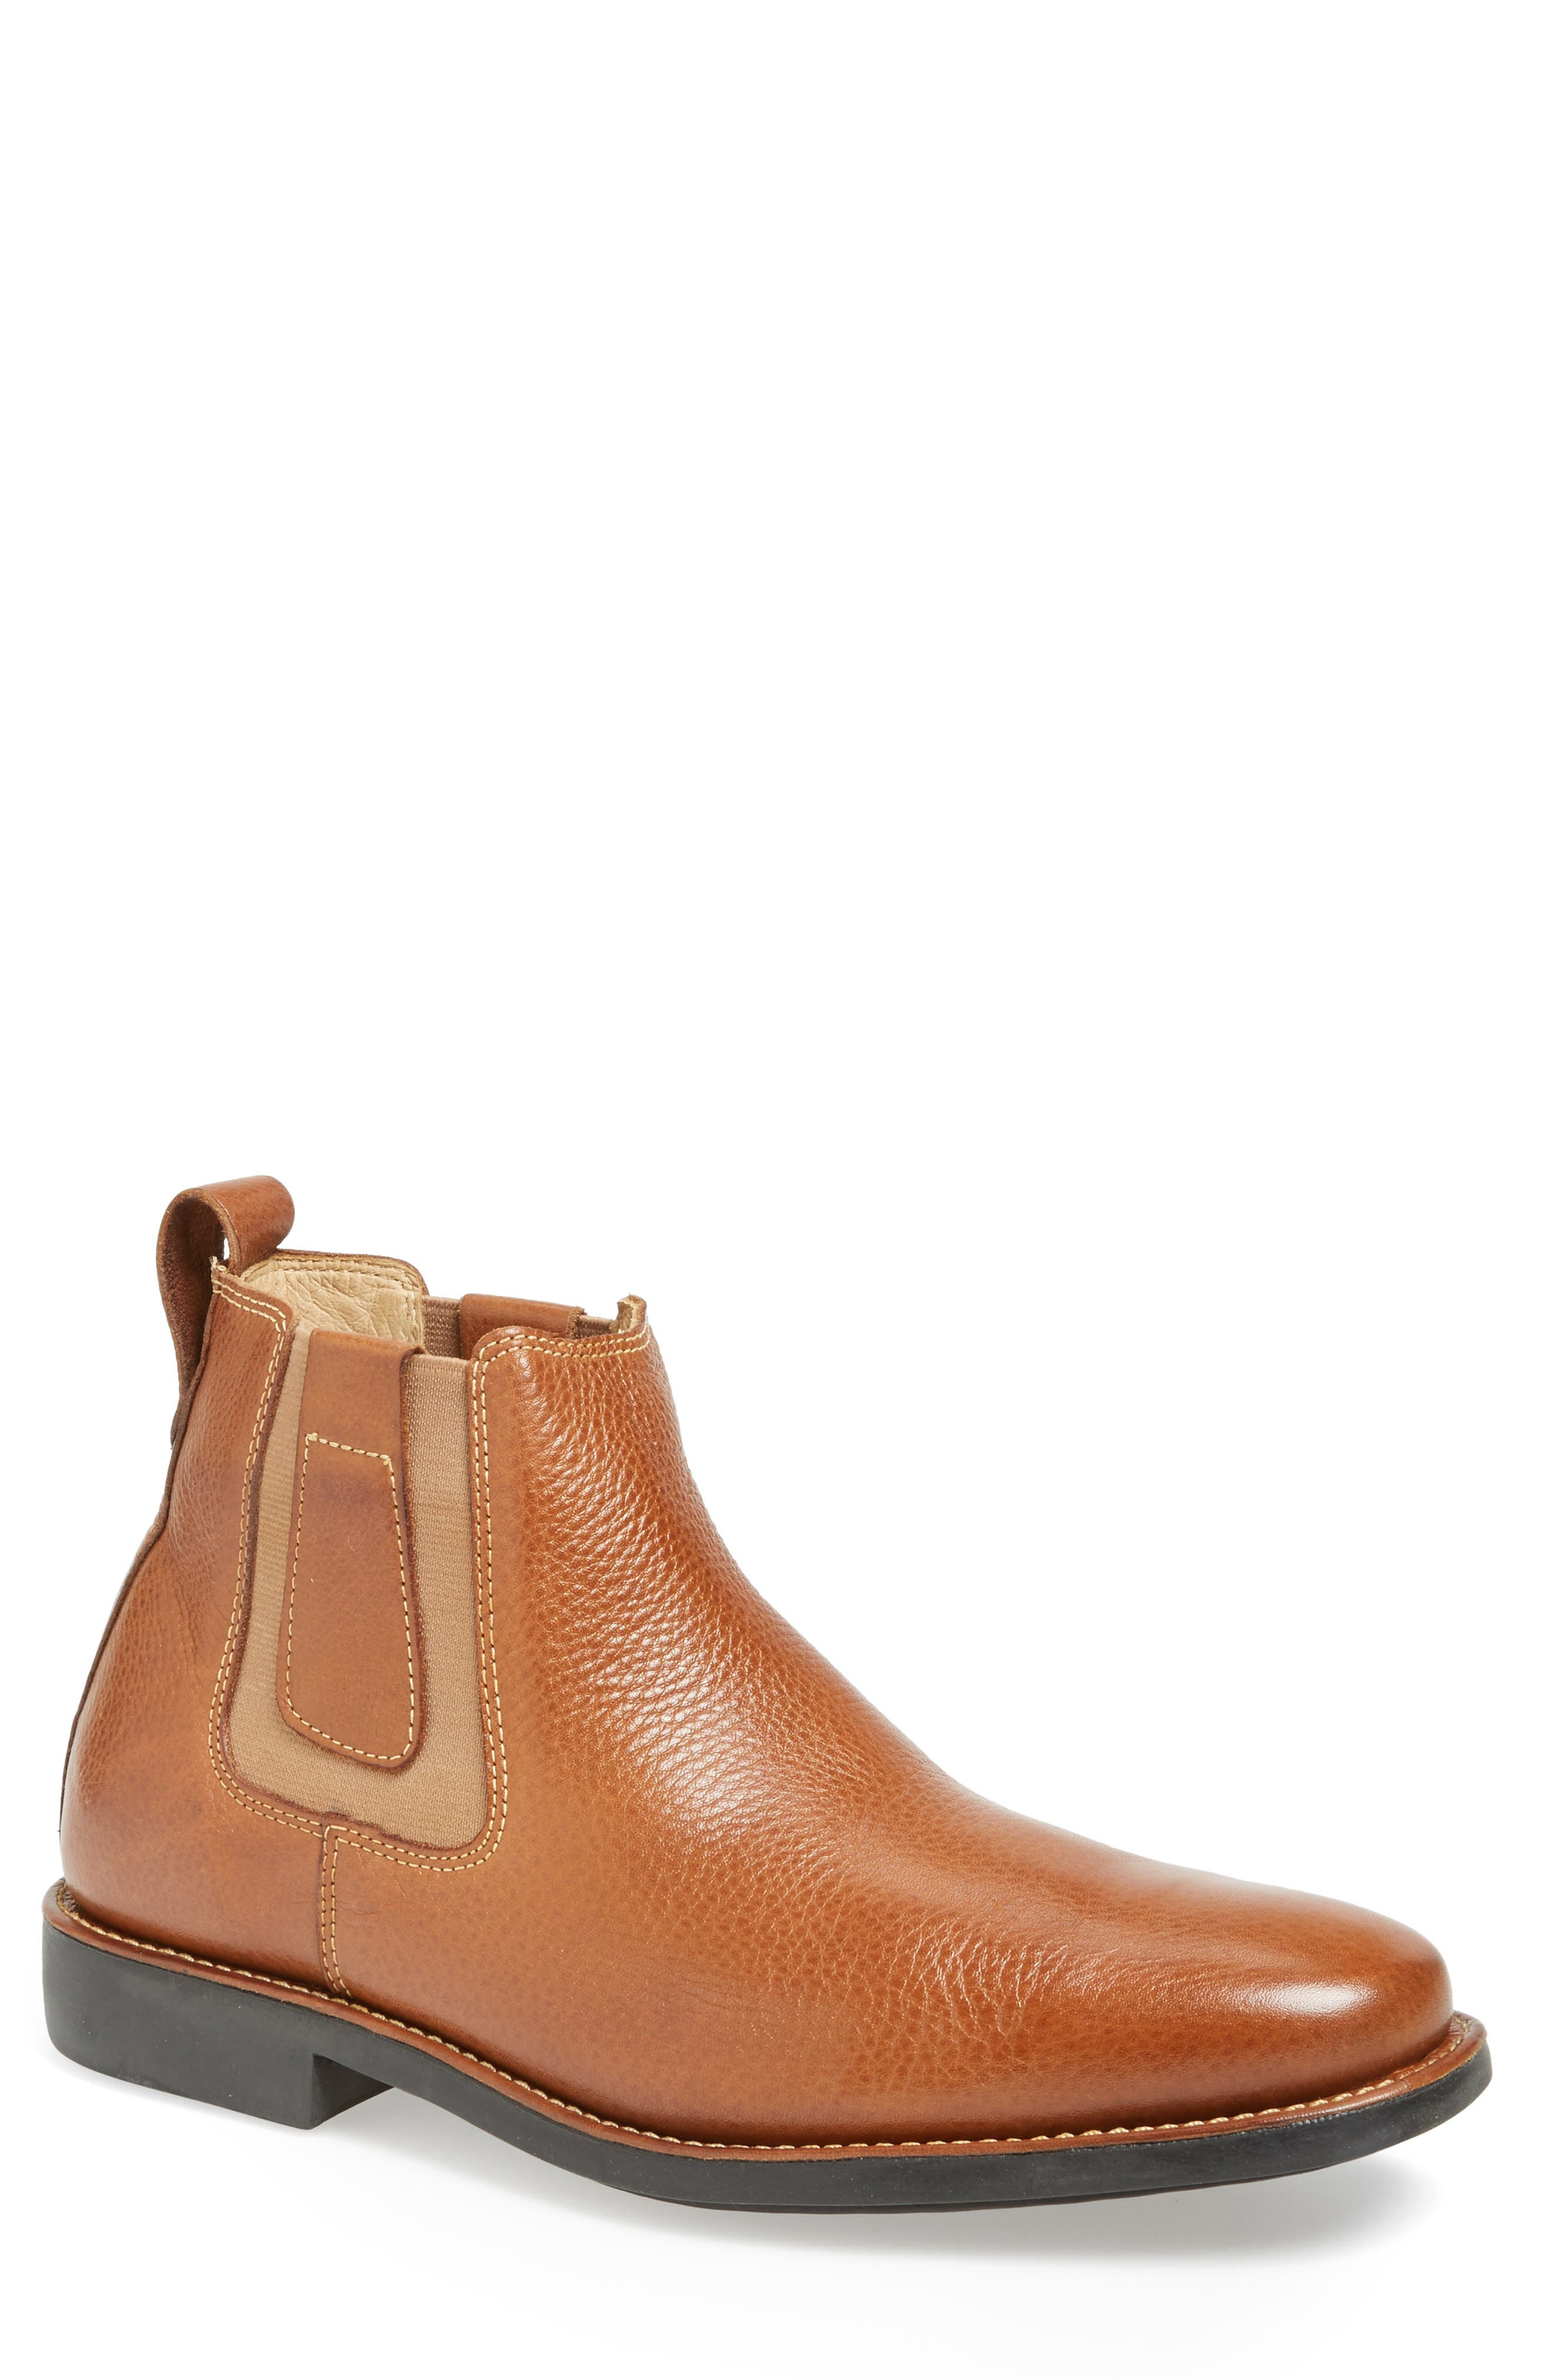 Natal Chelsea Boot,                             Alternate thumbnail 8, color,                             205